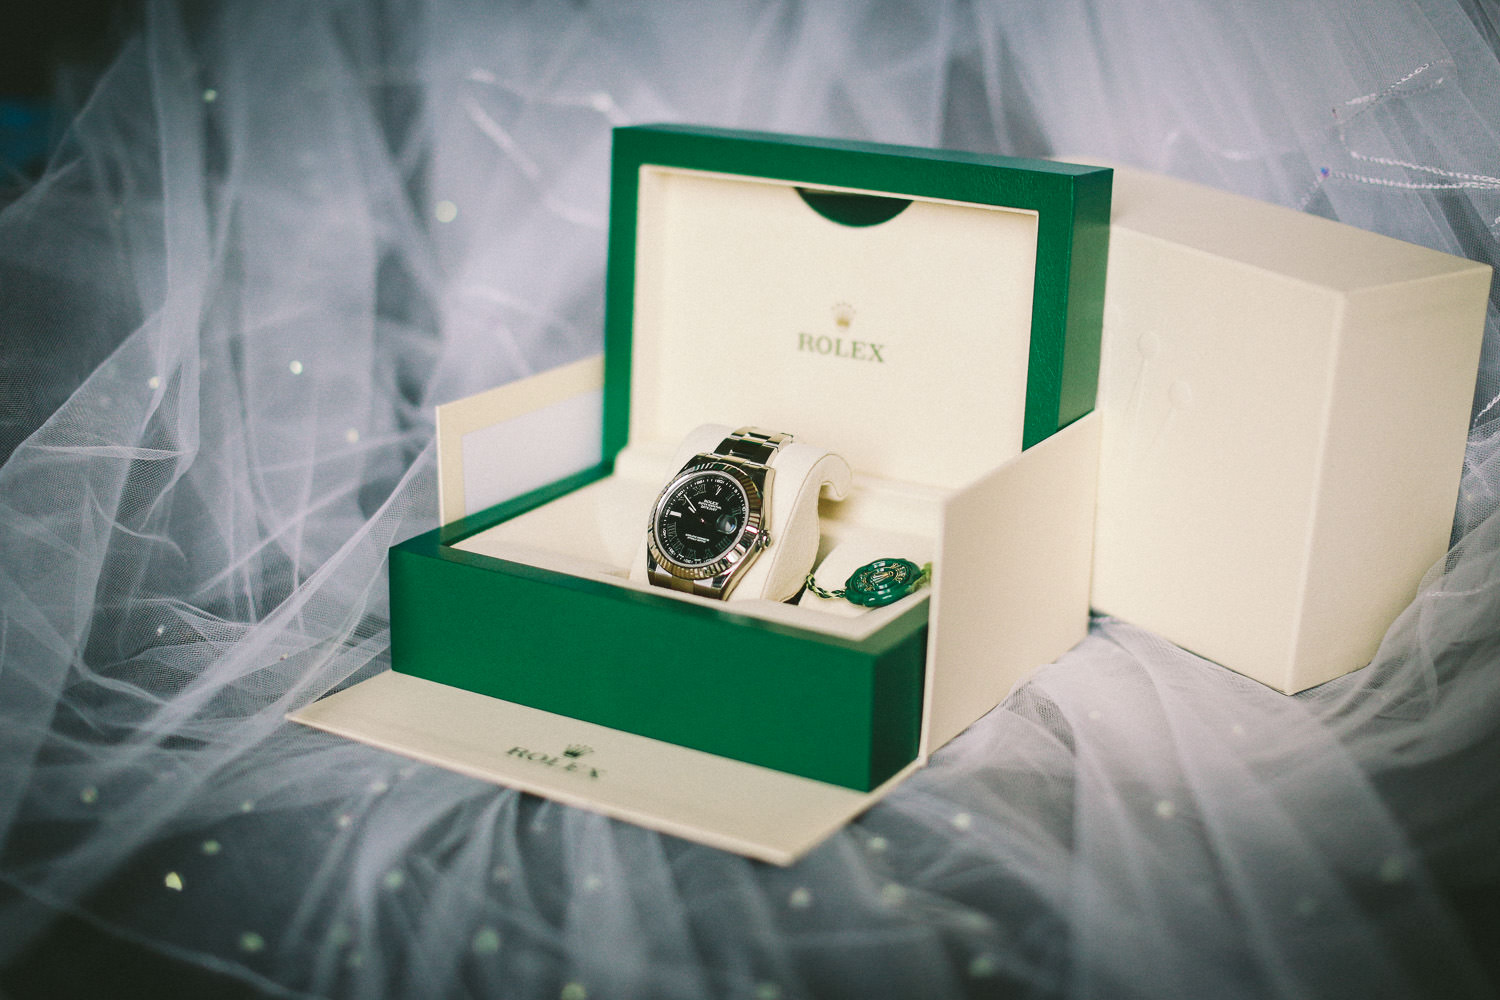 Hilton Liverpool Wedding photography Rolex watch